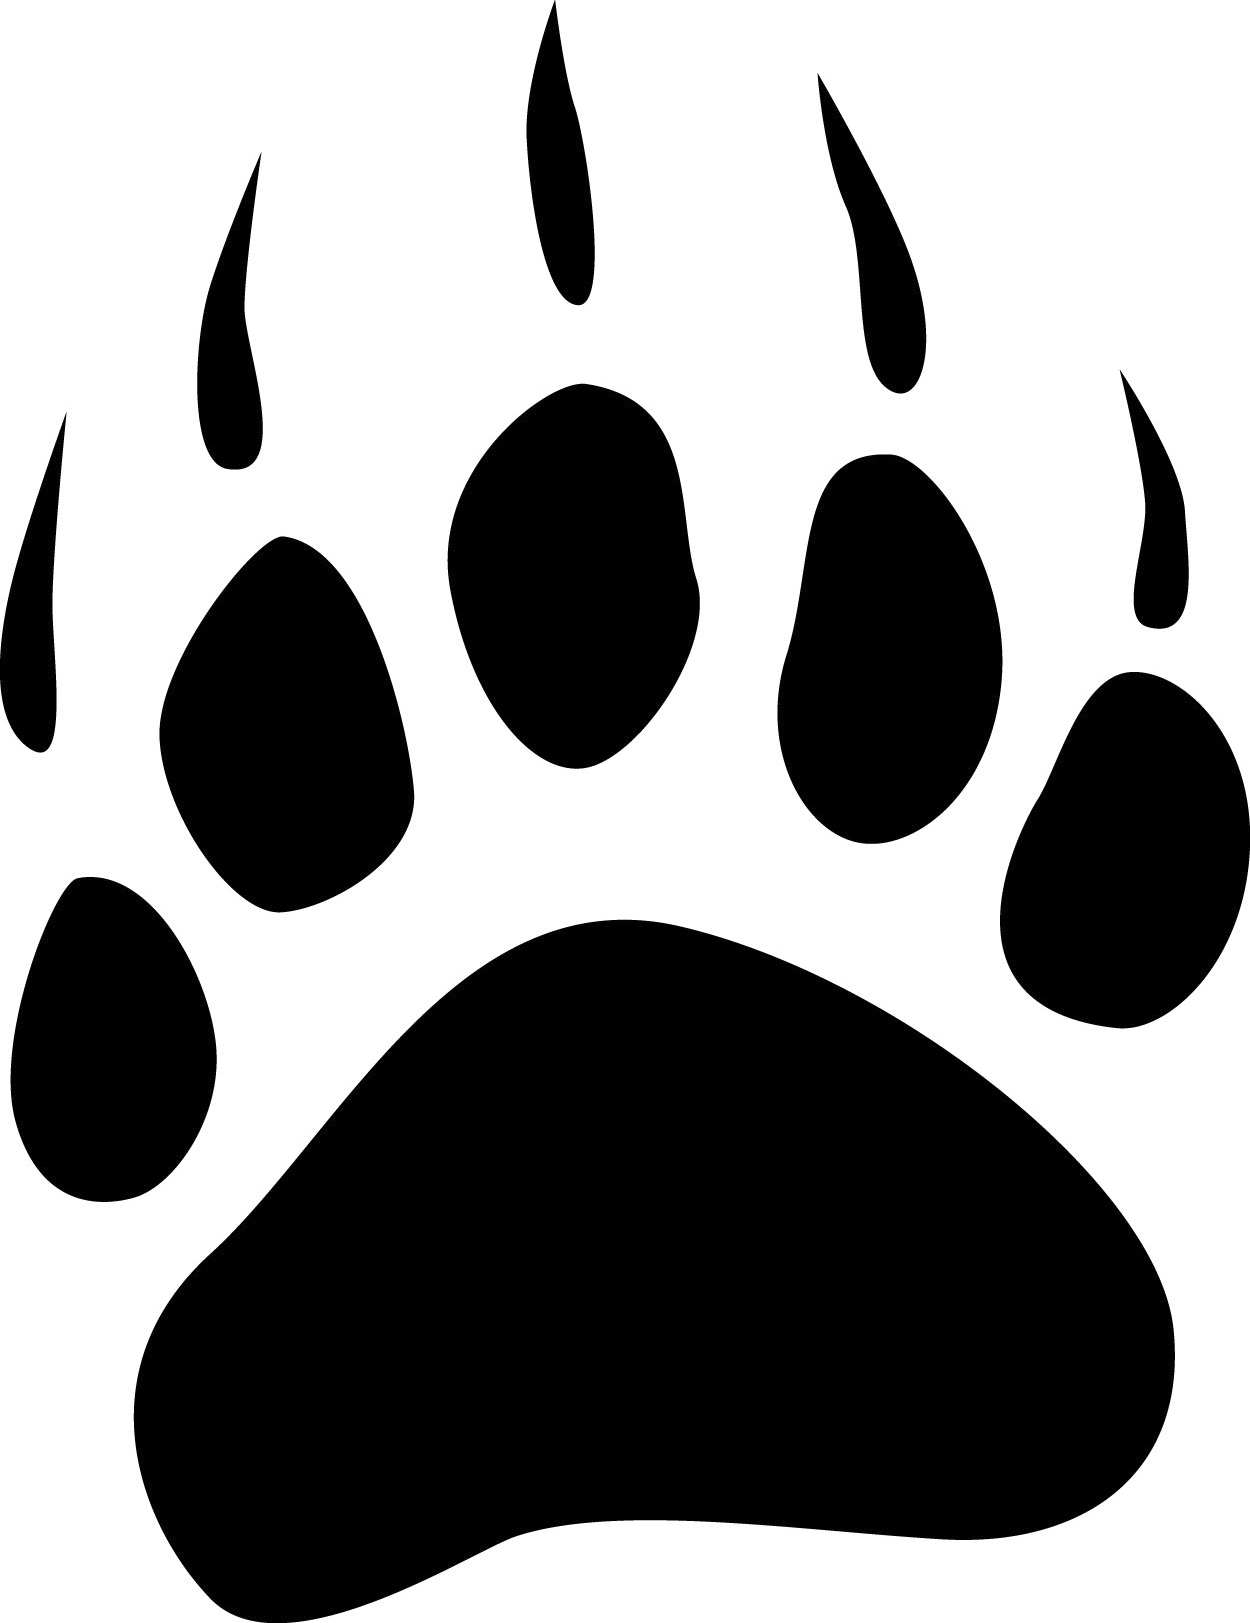 Paw clip art stencil. Bear paws drawings print